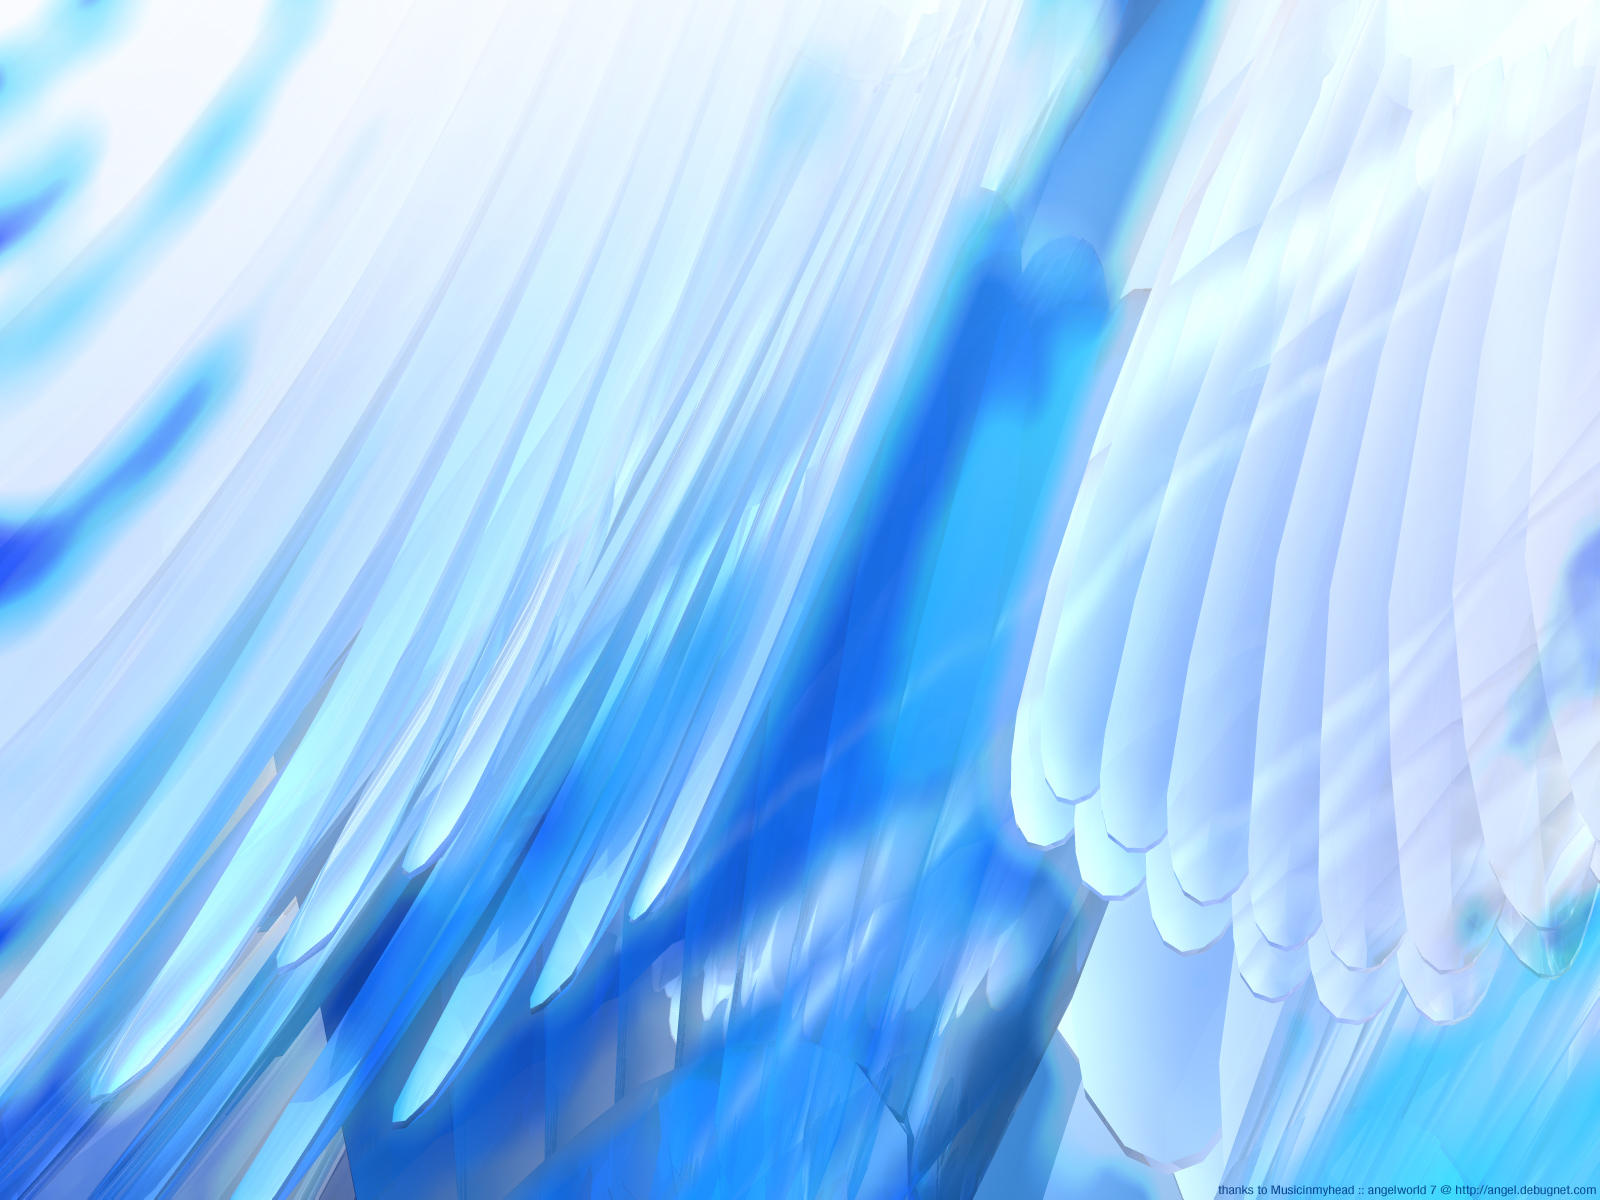 Angelic Entry - purified by niteangel